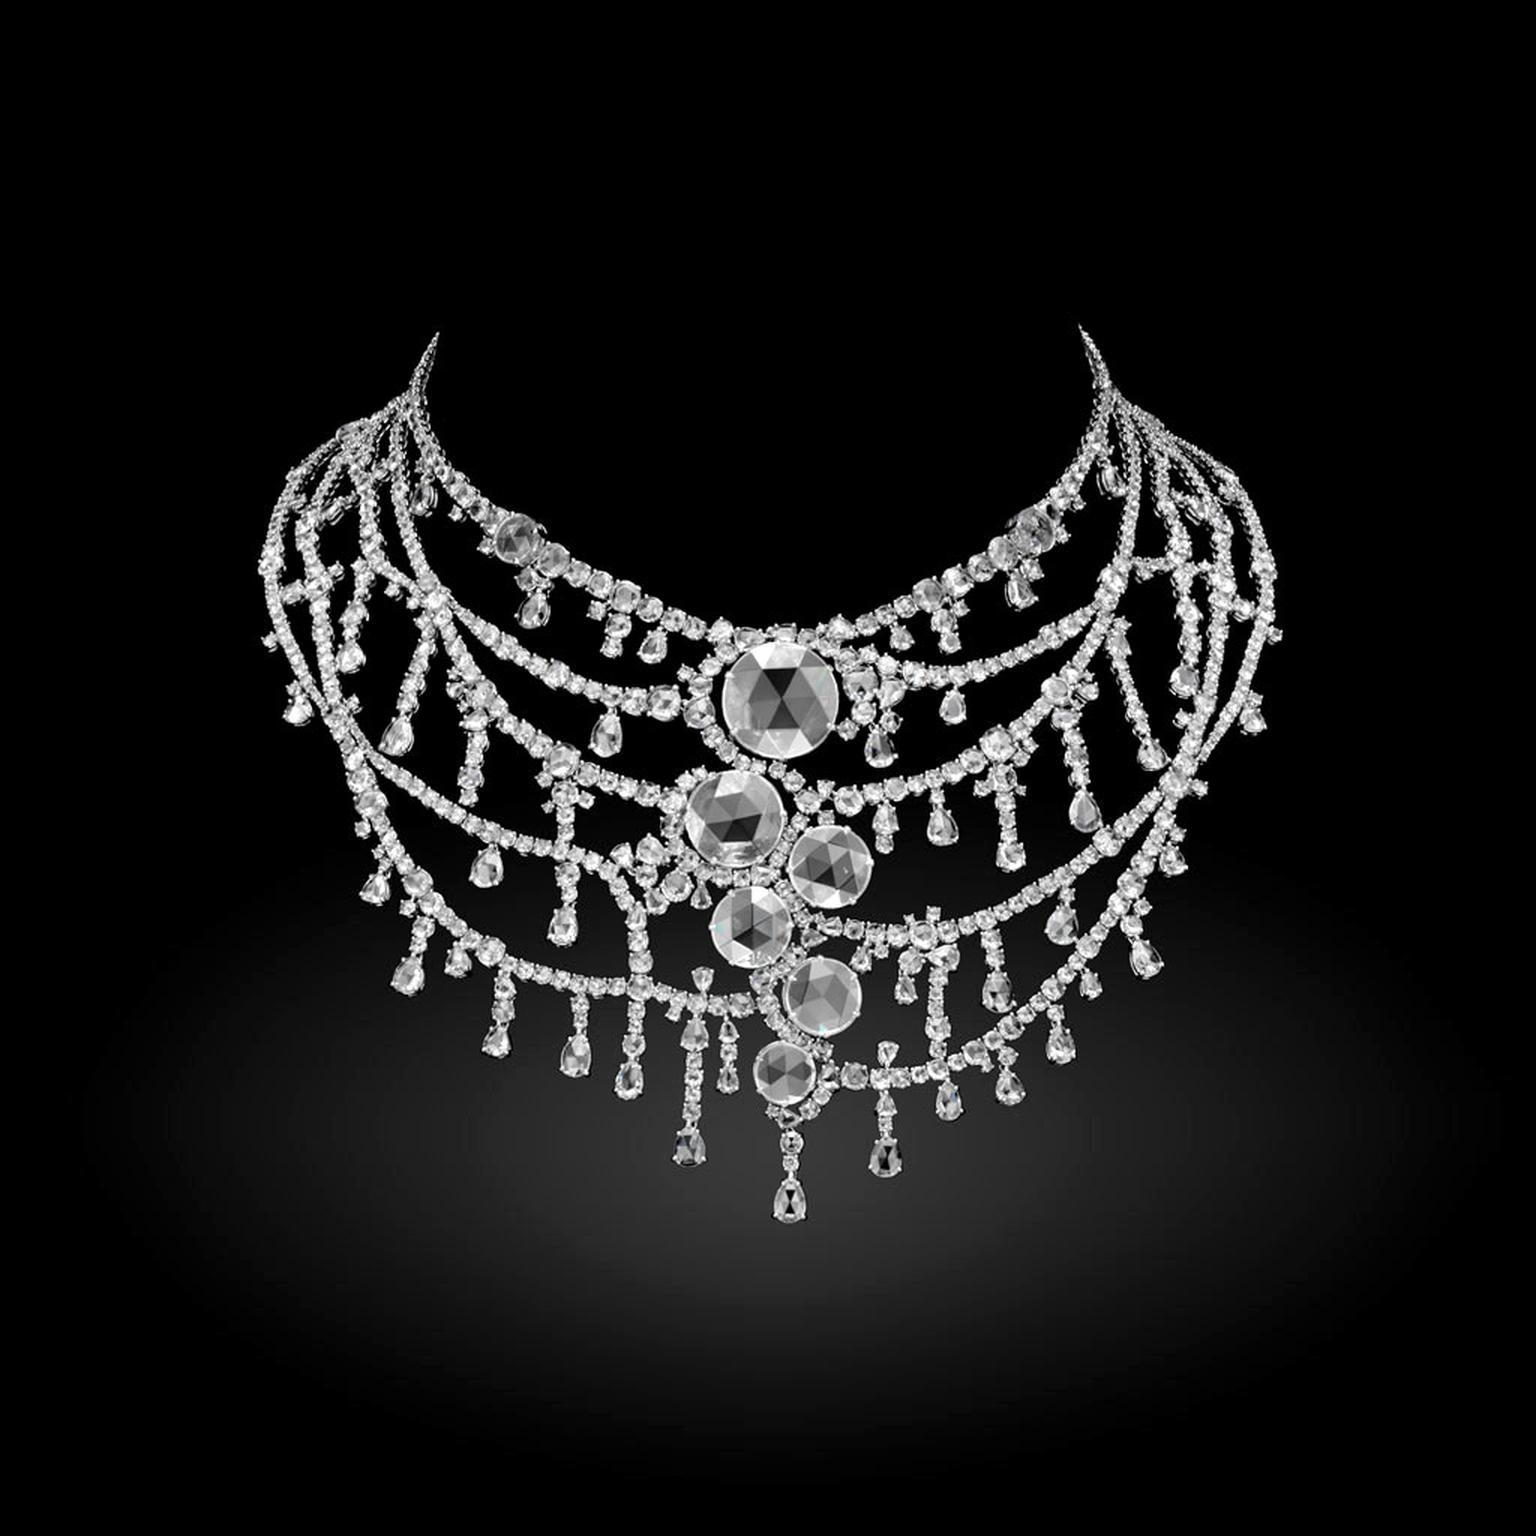 Michelle Ong Floating Diamond necklace